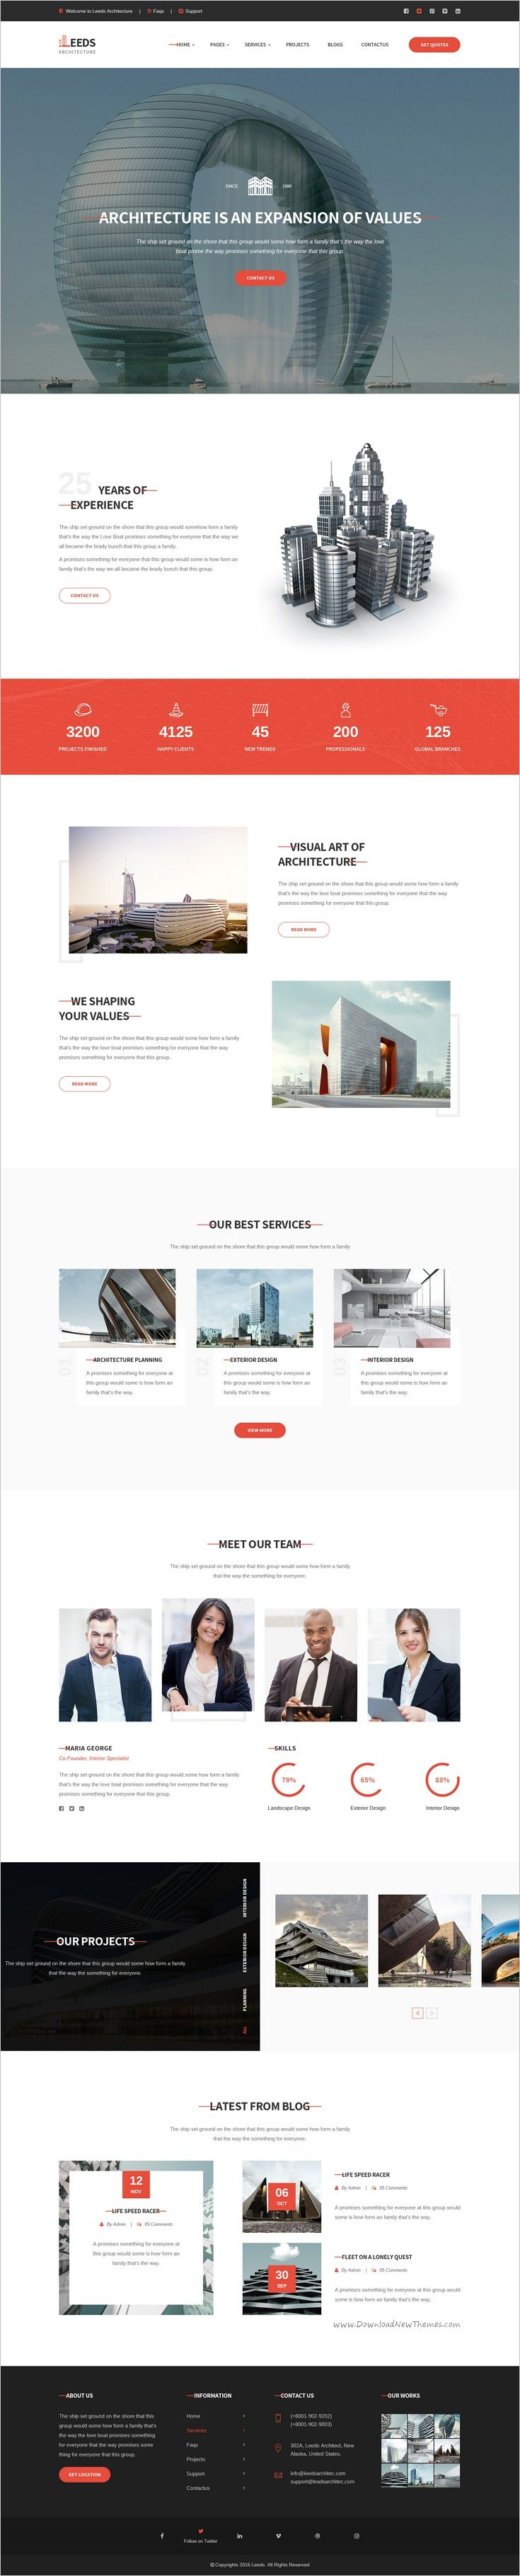 Leeds is beautifully design premium #PSD template for #architecture company #websites with 3 homepage layouts and 16 organized PSD pages download now➩ https://themeforest.net/item/leeds-architecture-psd-template/19268983?ref=Datasata